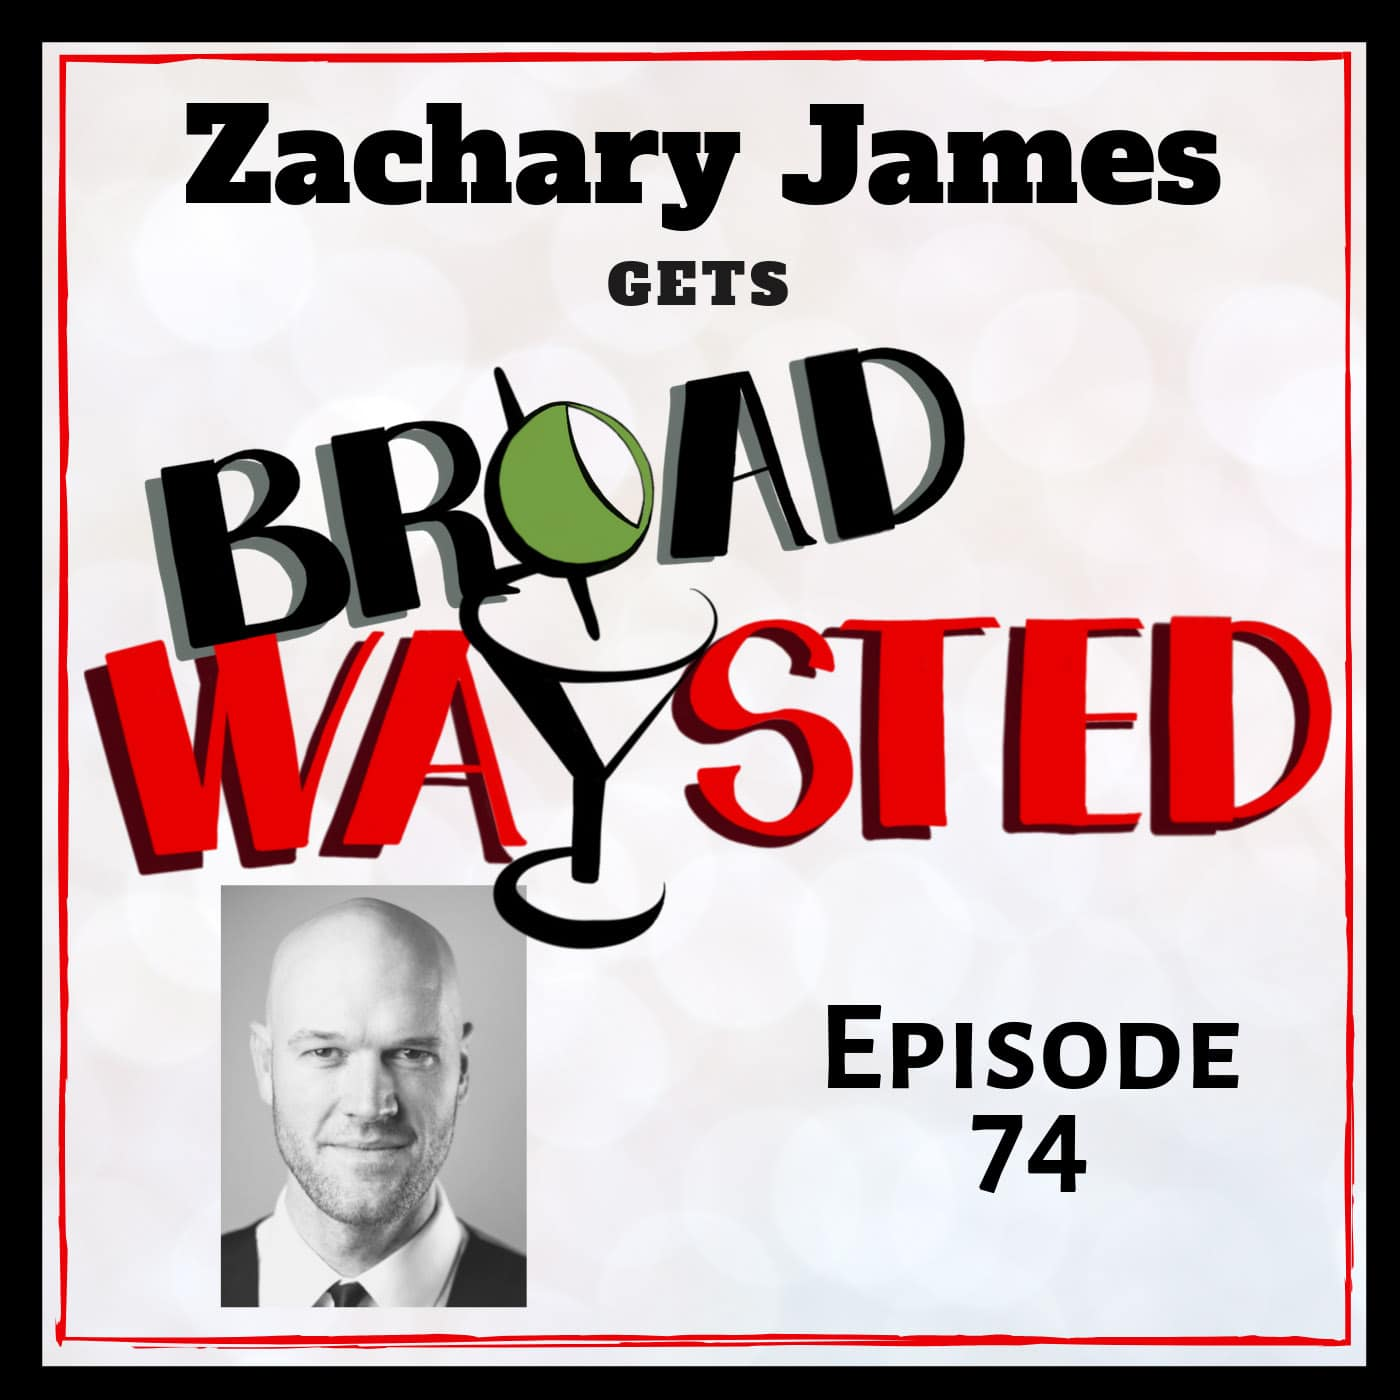 Broadwaysted Ep 74 Zachary James